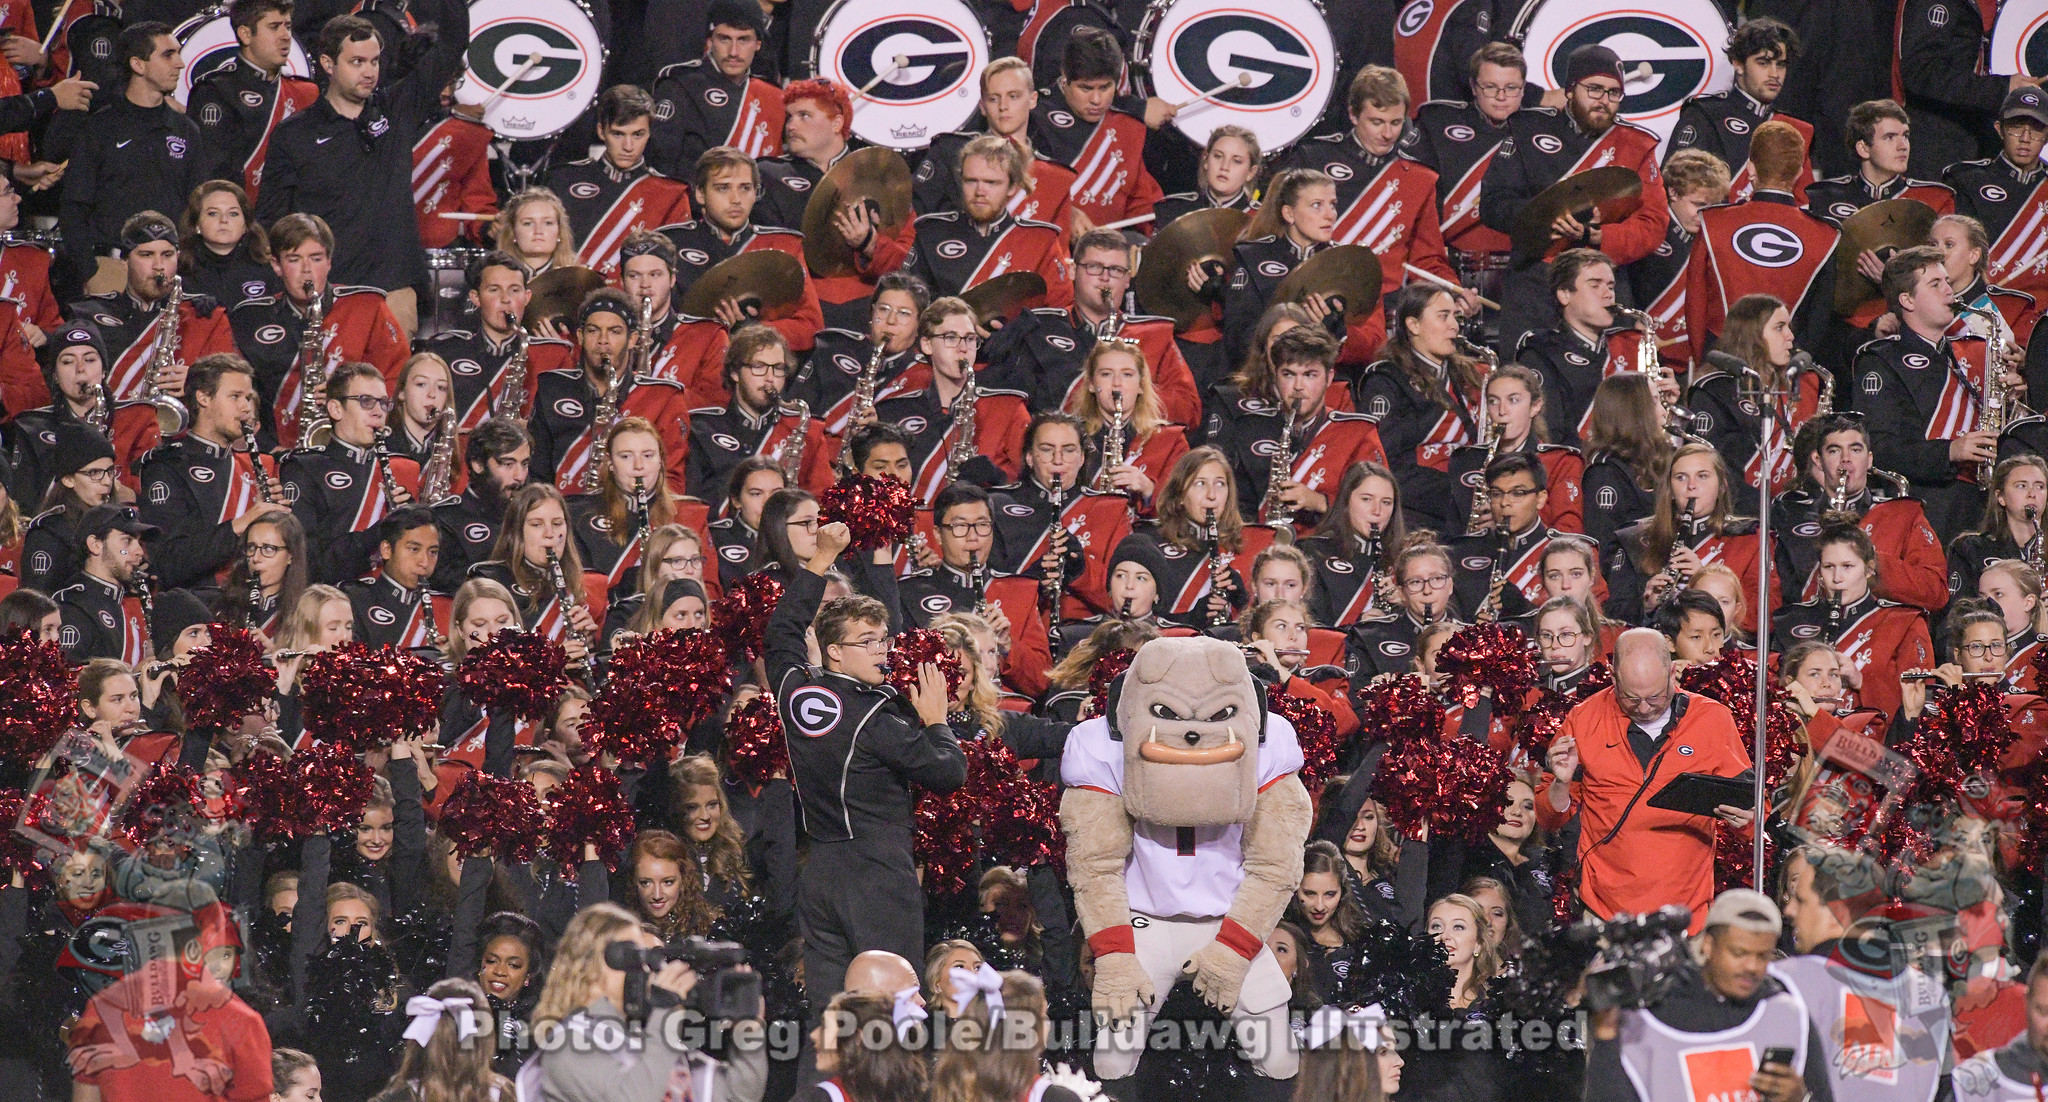 Redcoat Band and Hairy Dawg, Georgia vs. Auburn, Saturday, November 16, 2019